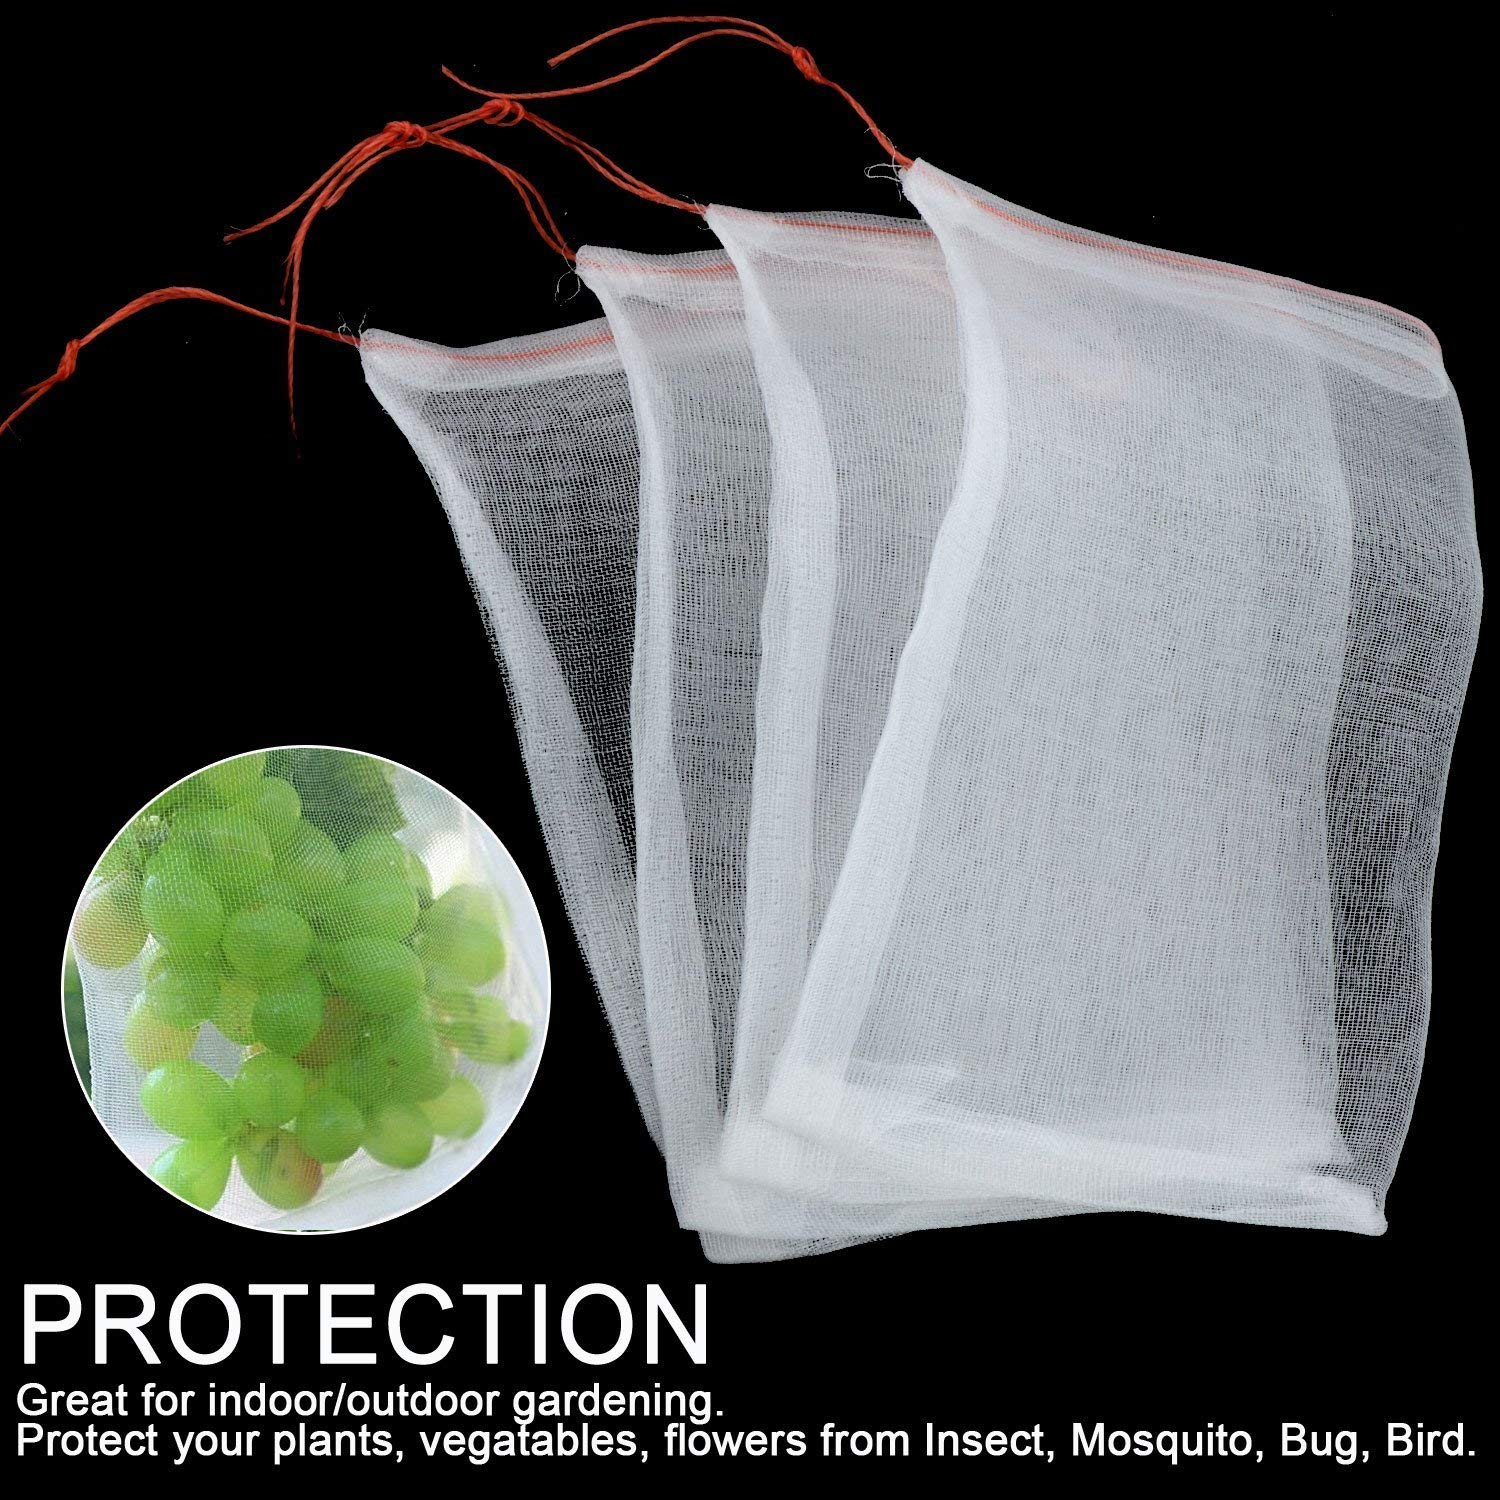 "Ecover Insect Netting Barrier Bag Bird Mosquito Net Garden Netting - Protect Plant/Flowers, 6"" x 4"", 10pcs"